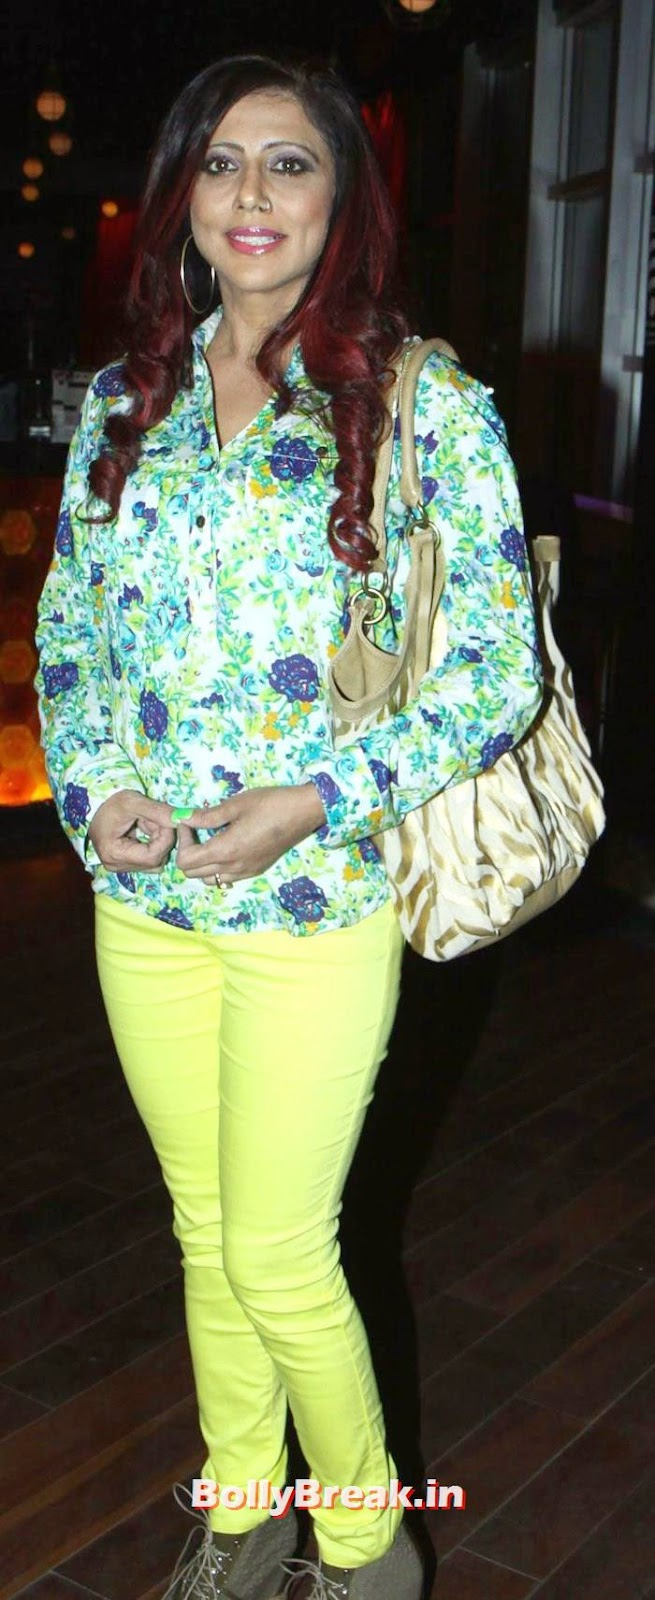 Tinaa Ghaai, Brinda Parekh, Tanisha Singh at Rehman Khan's Stand Up Comedy Show